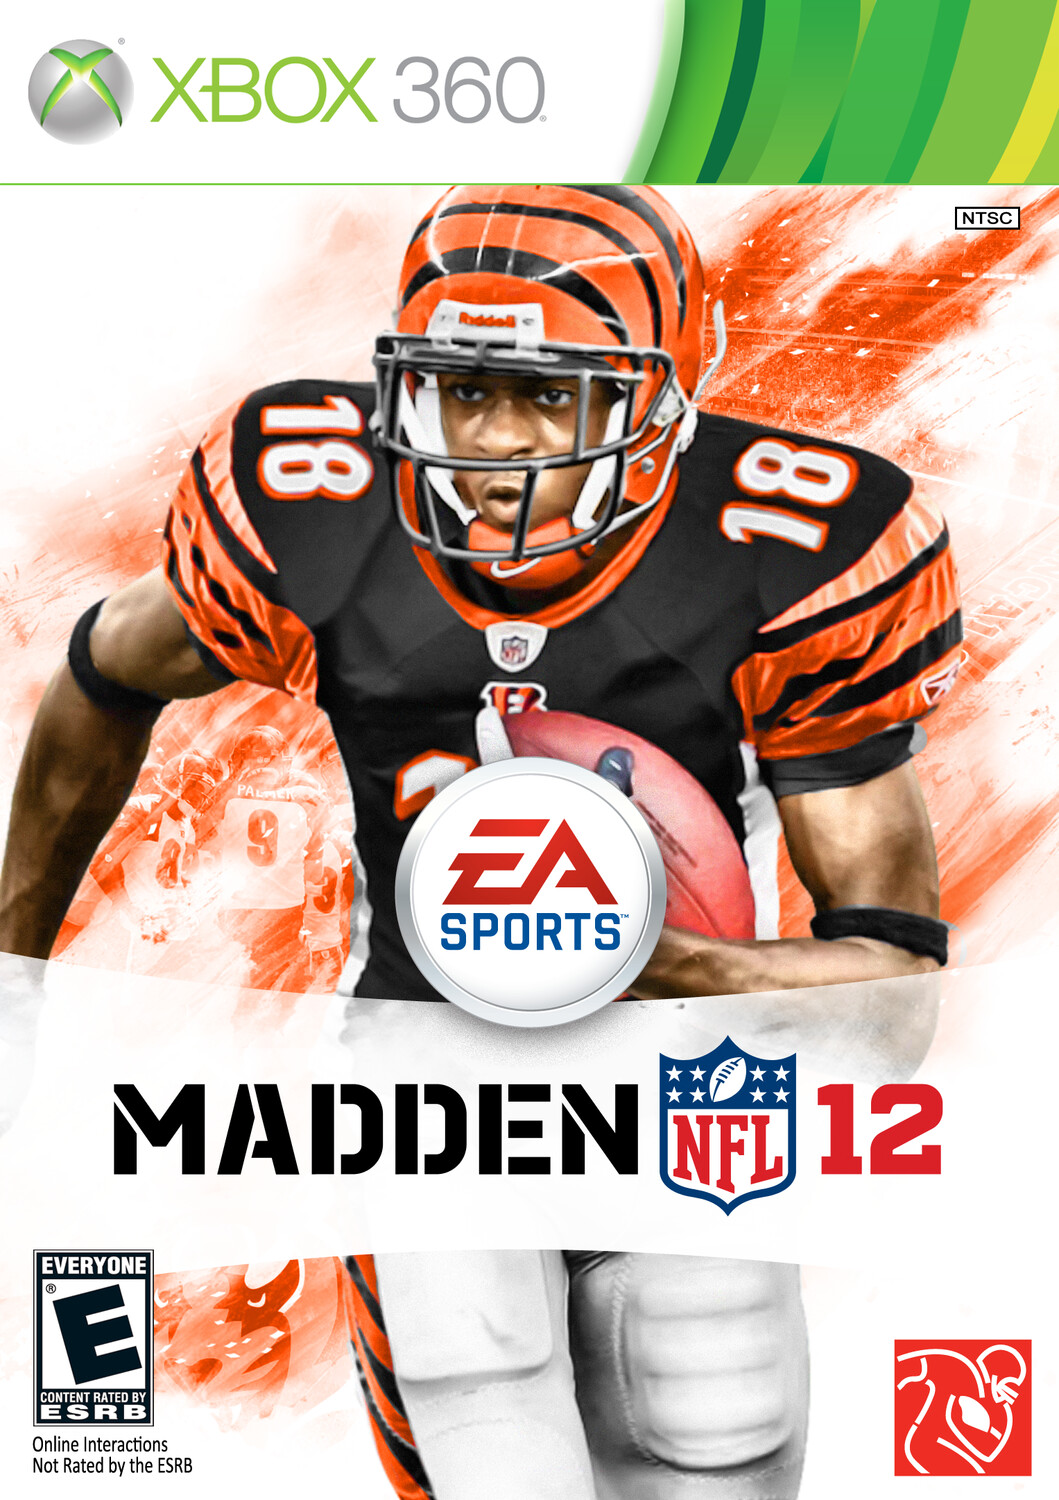 Updating madden 12 rosters dating sites in essex